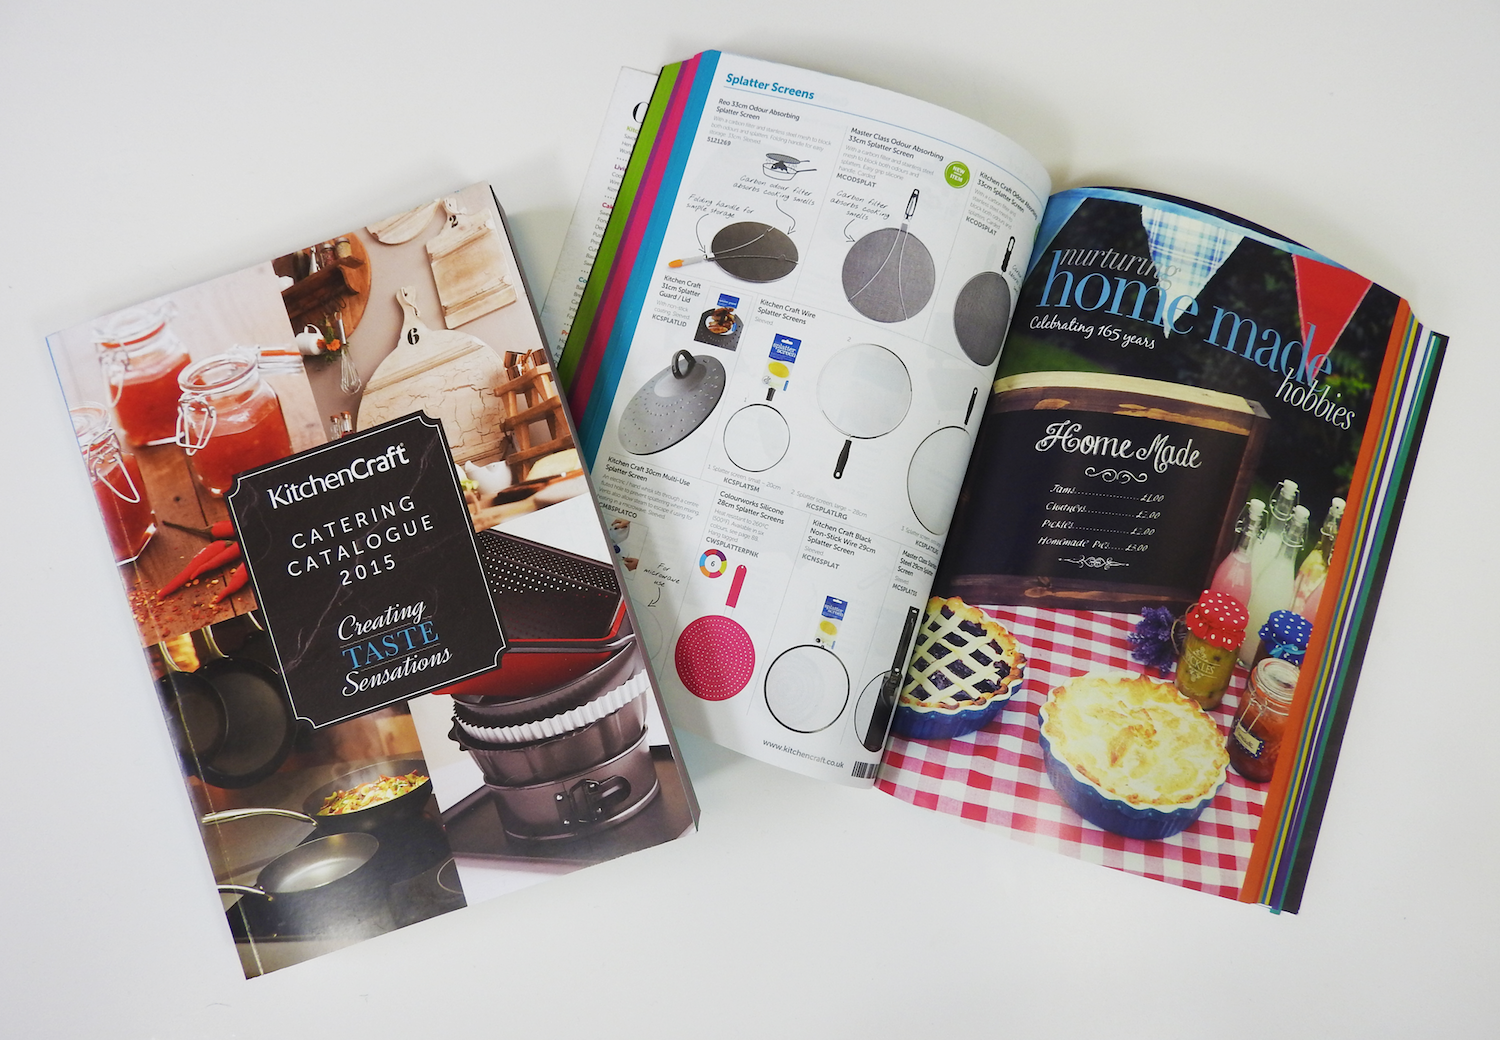 Kitchen-Craft-Catering-Catalogue.png